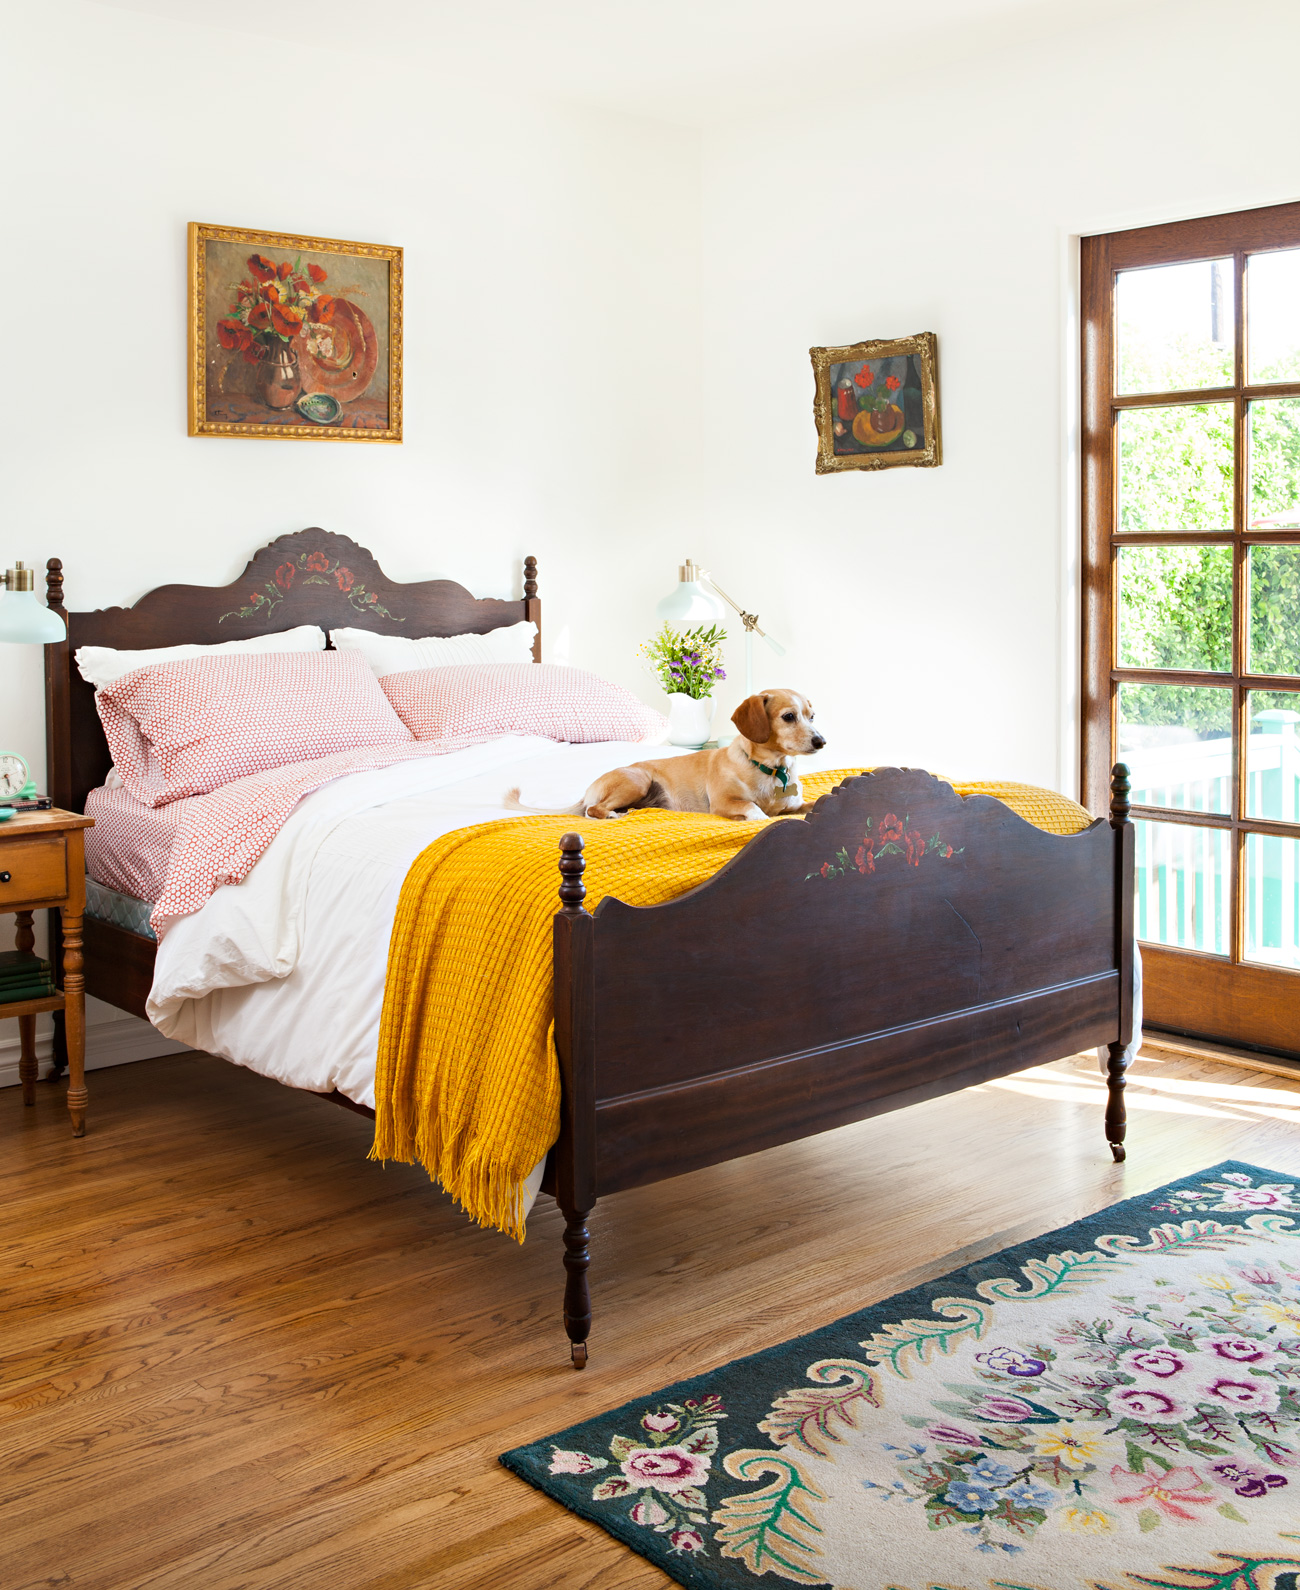 Antique bed in a spanish bungalow with vintage art on the walls and a yellow throw blanket on the end of the bed with a puppy on top.